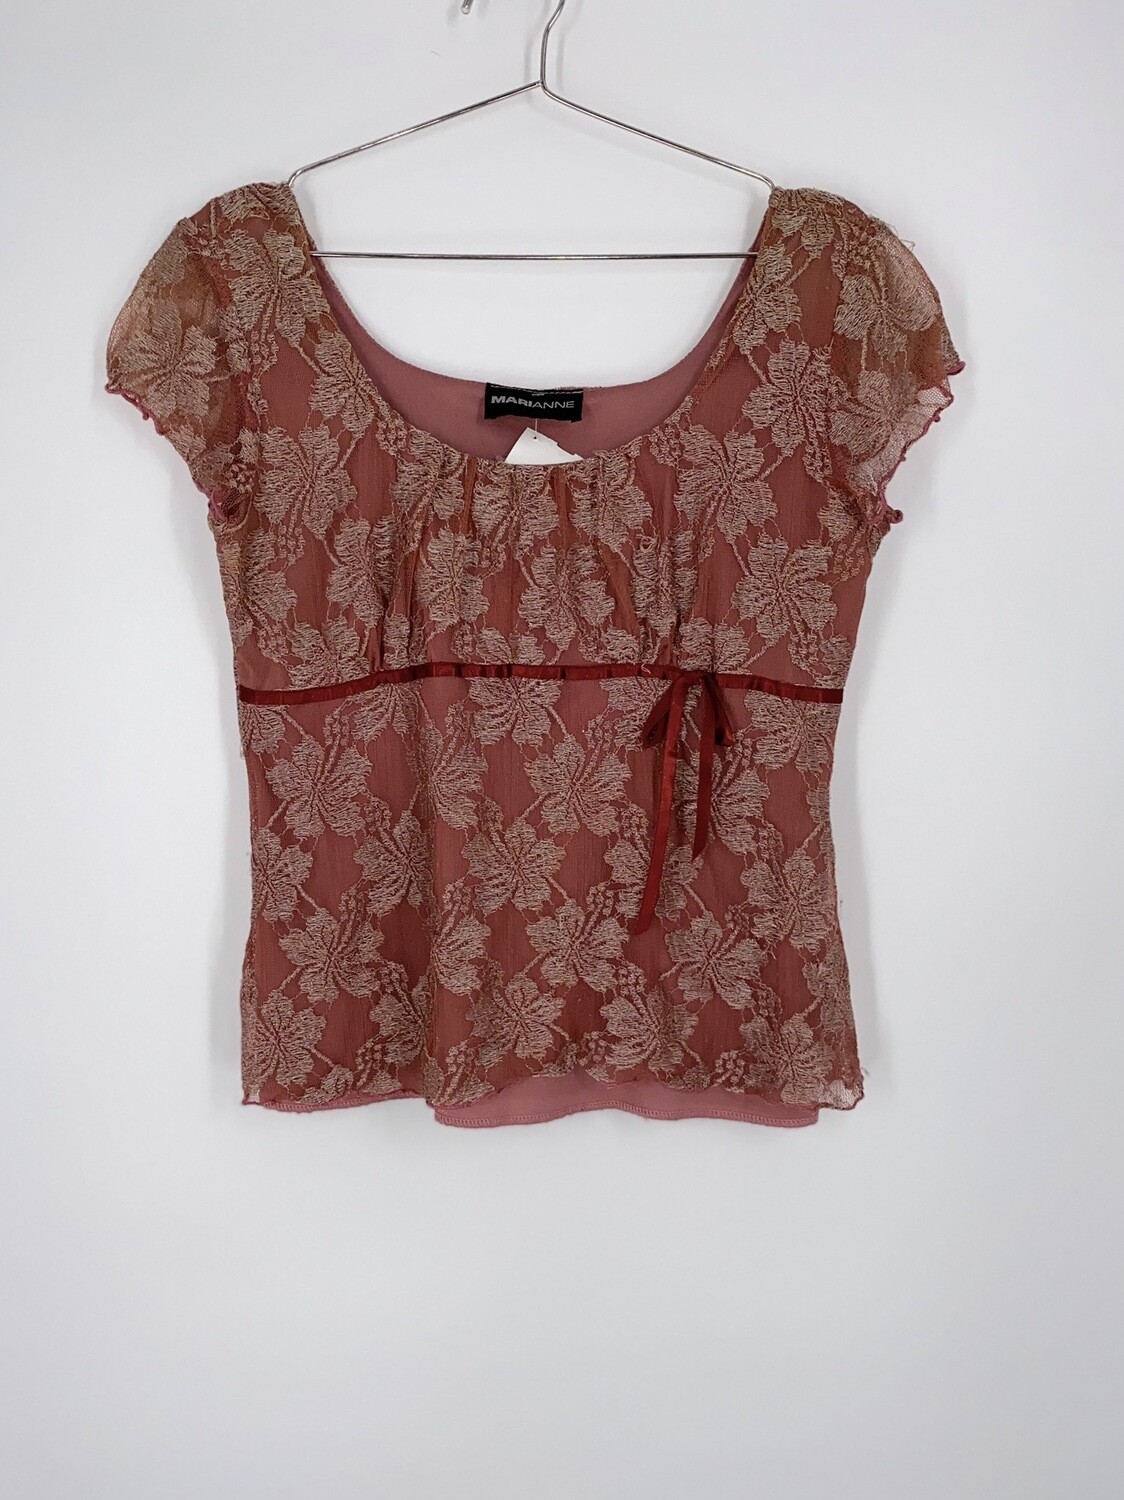 Marianne Bow Top Size M